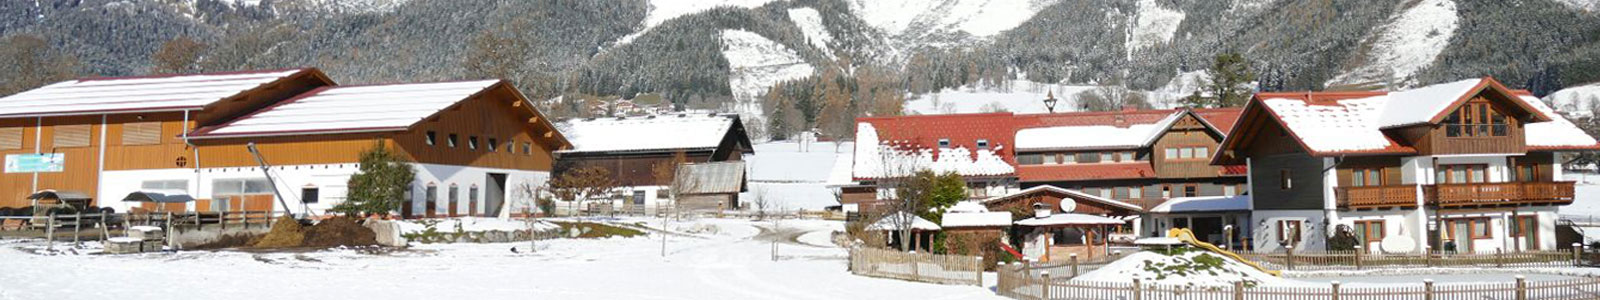 minzlhof-winter.jpg